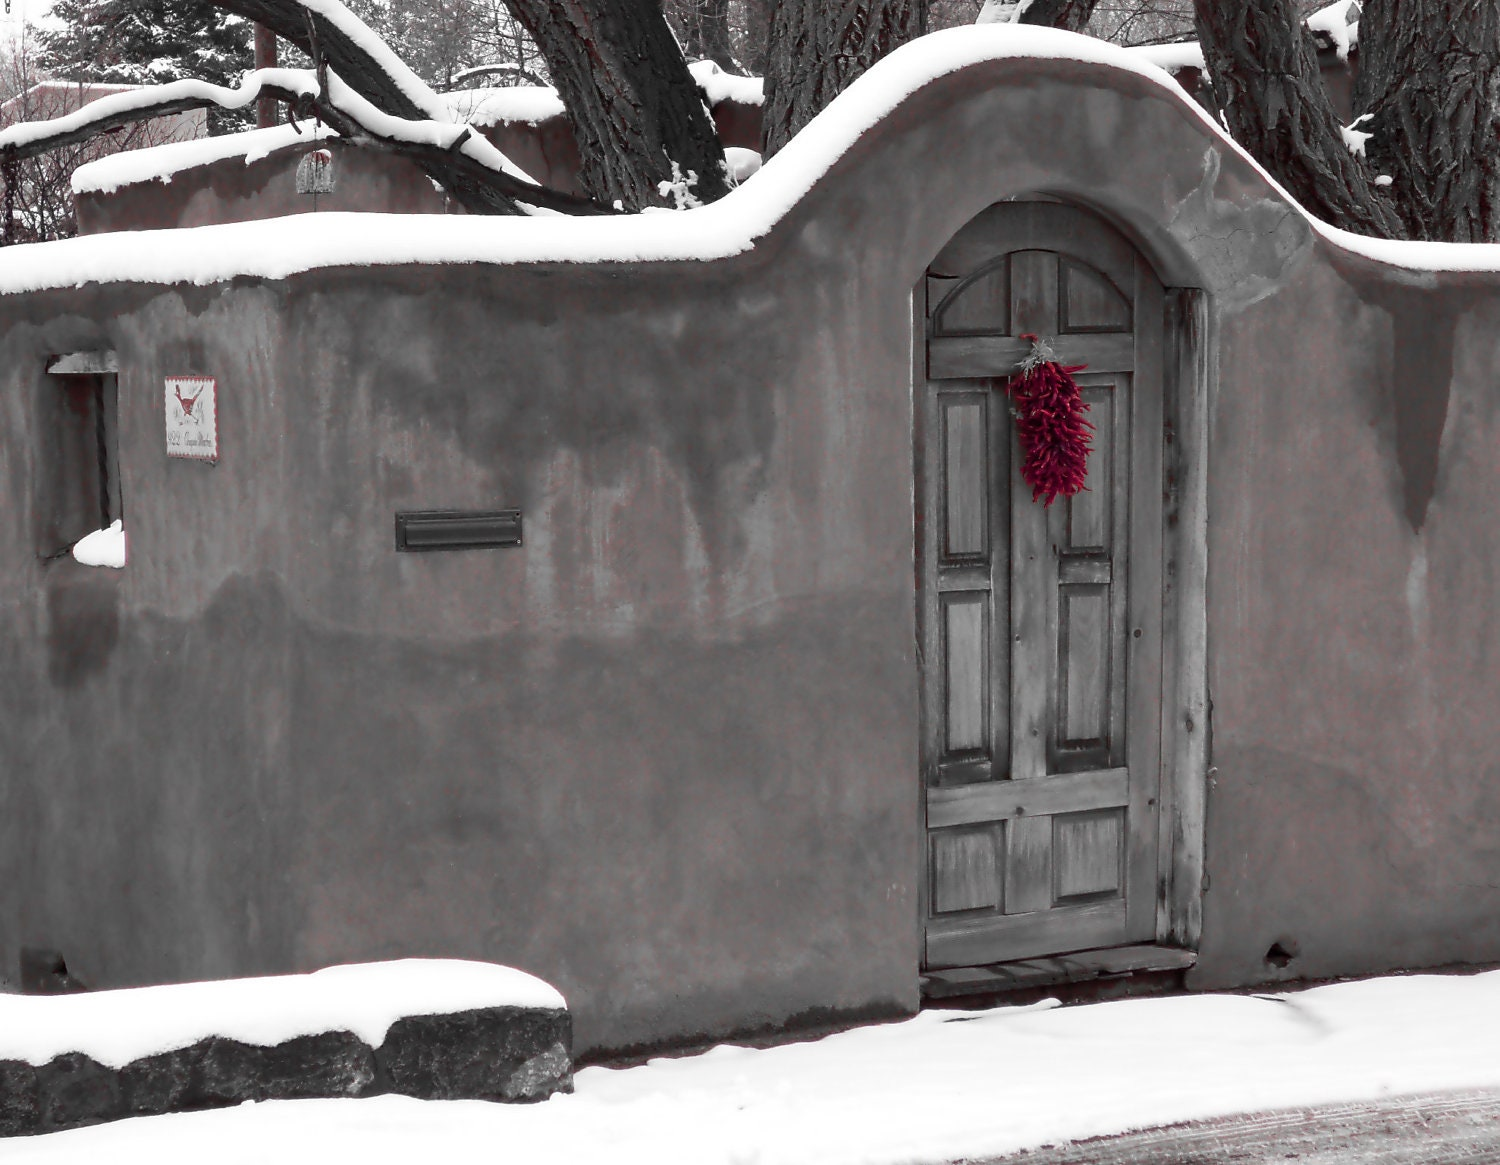 Holiday decor, Christmas winter monochrome goth art,  blood red peppers, door photo, New Mexico steel grey, south west adobe cottage 5x7 - BlackCatPhotographs